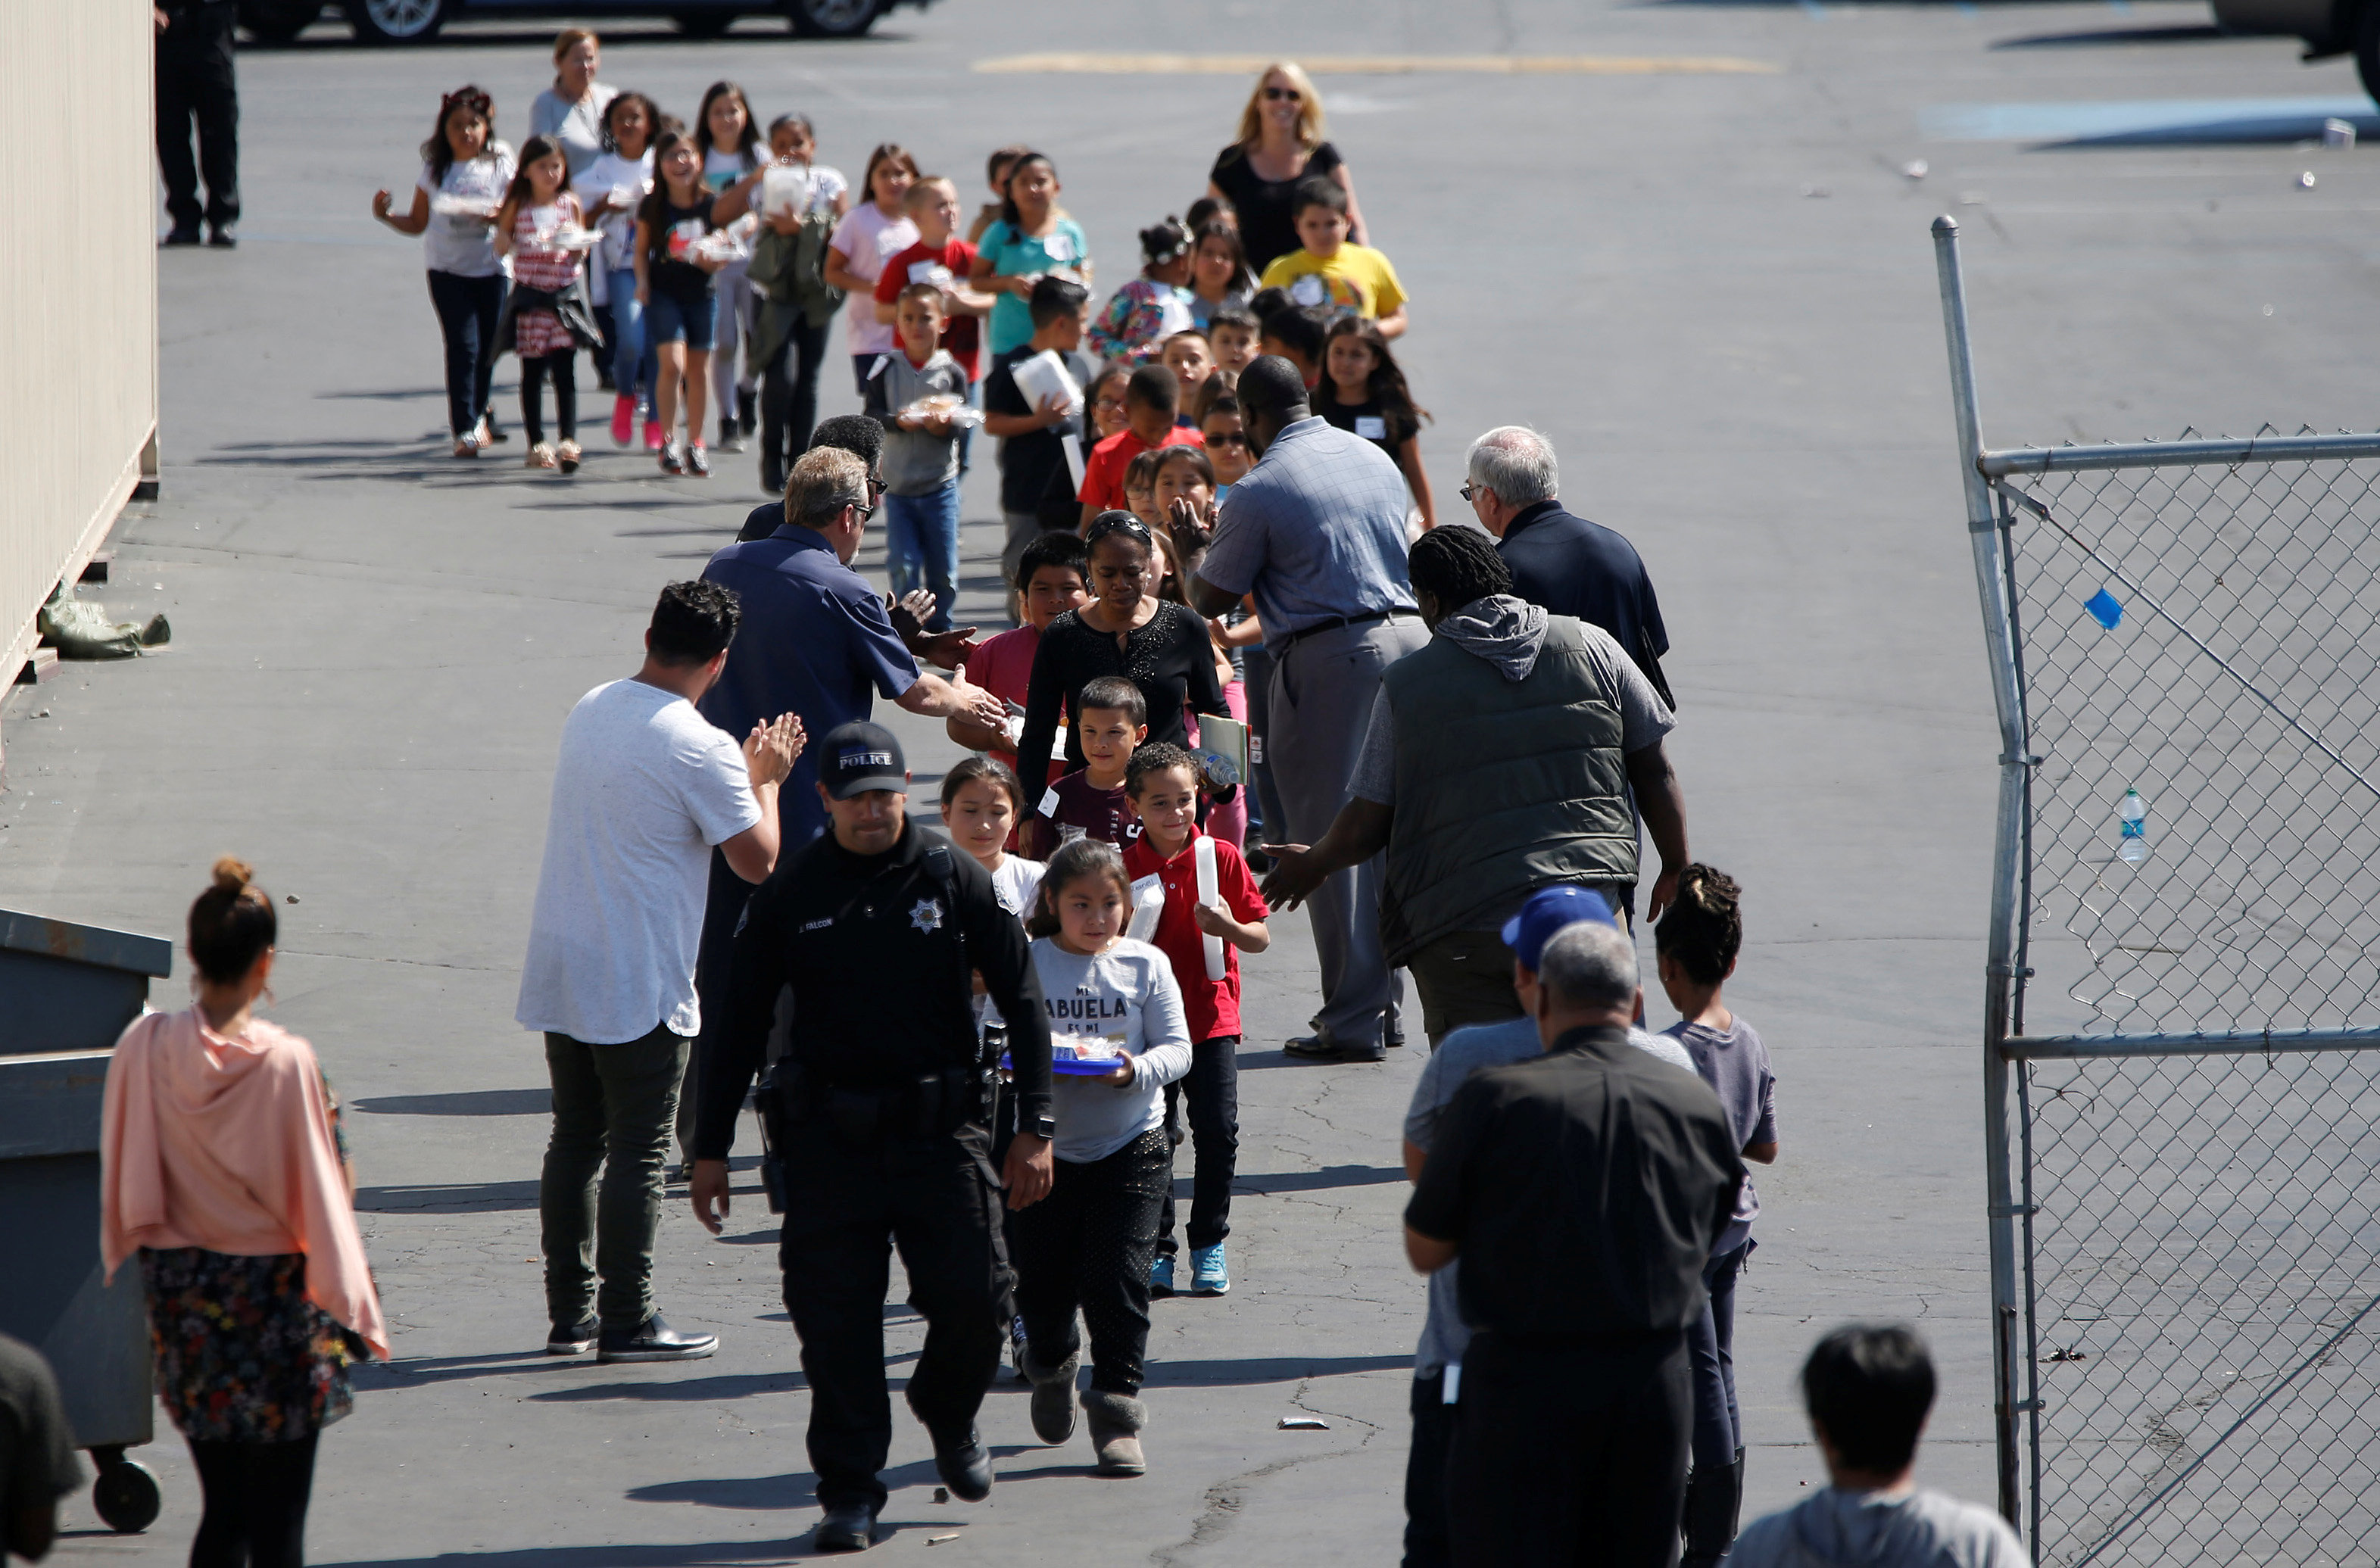 REFILE -- CORRECTING TYPO -- Students who were evacuated after a shooting at North Park Elementary School walk past well-wishers to be reunited with their waiting parents at a high school in San Bernardino, California, U.S. April 10, 2017. REUTERS/Mario Anzuoni